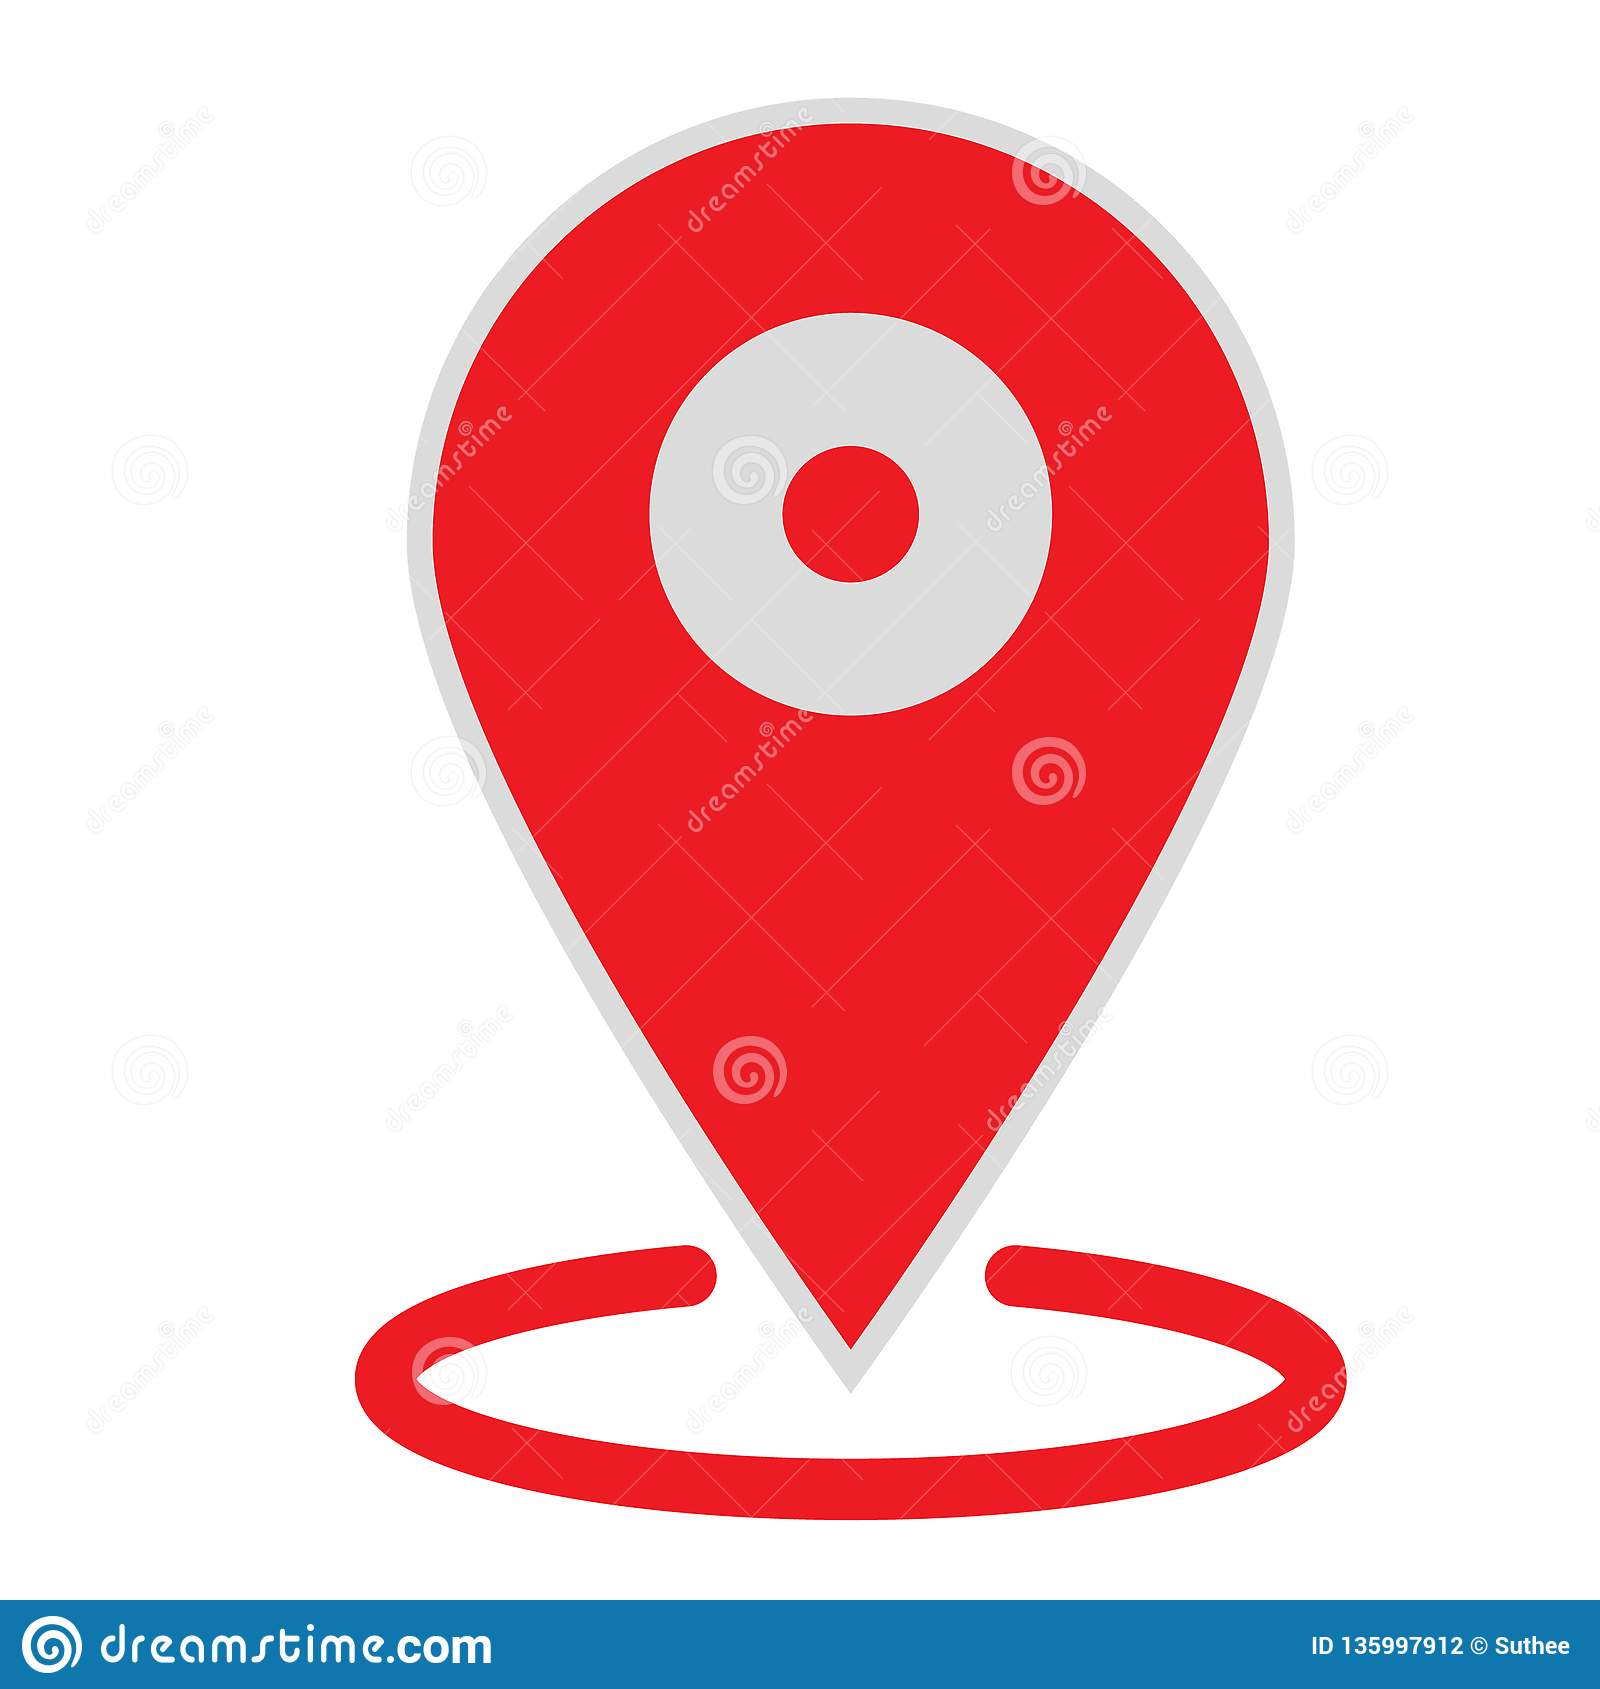 Location Map Icon On White Background  Flat Style  Location